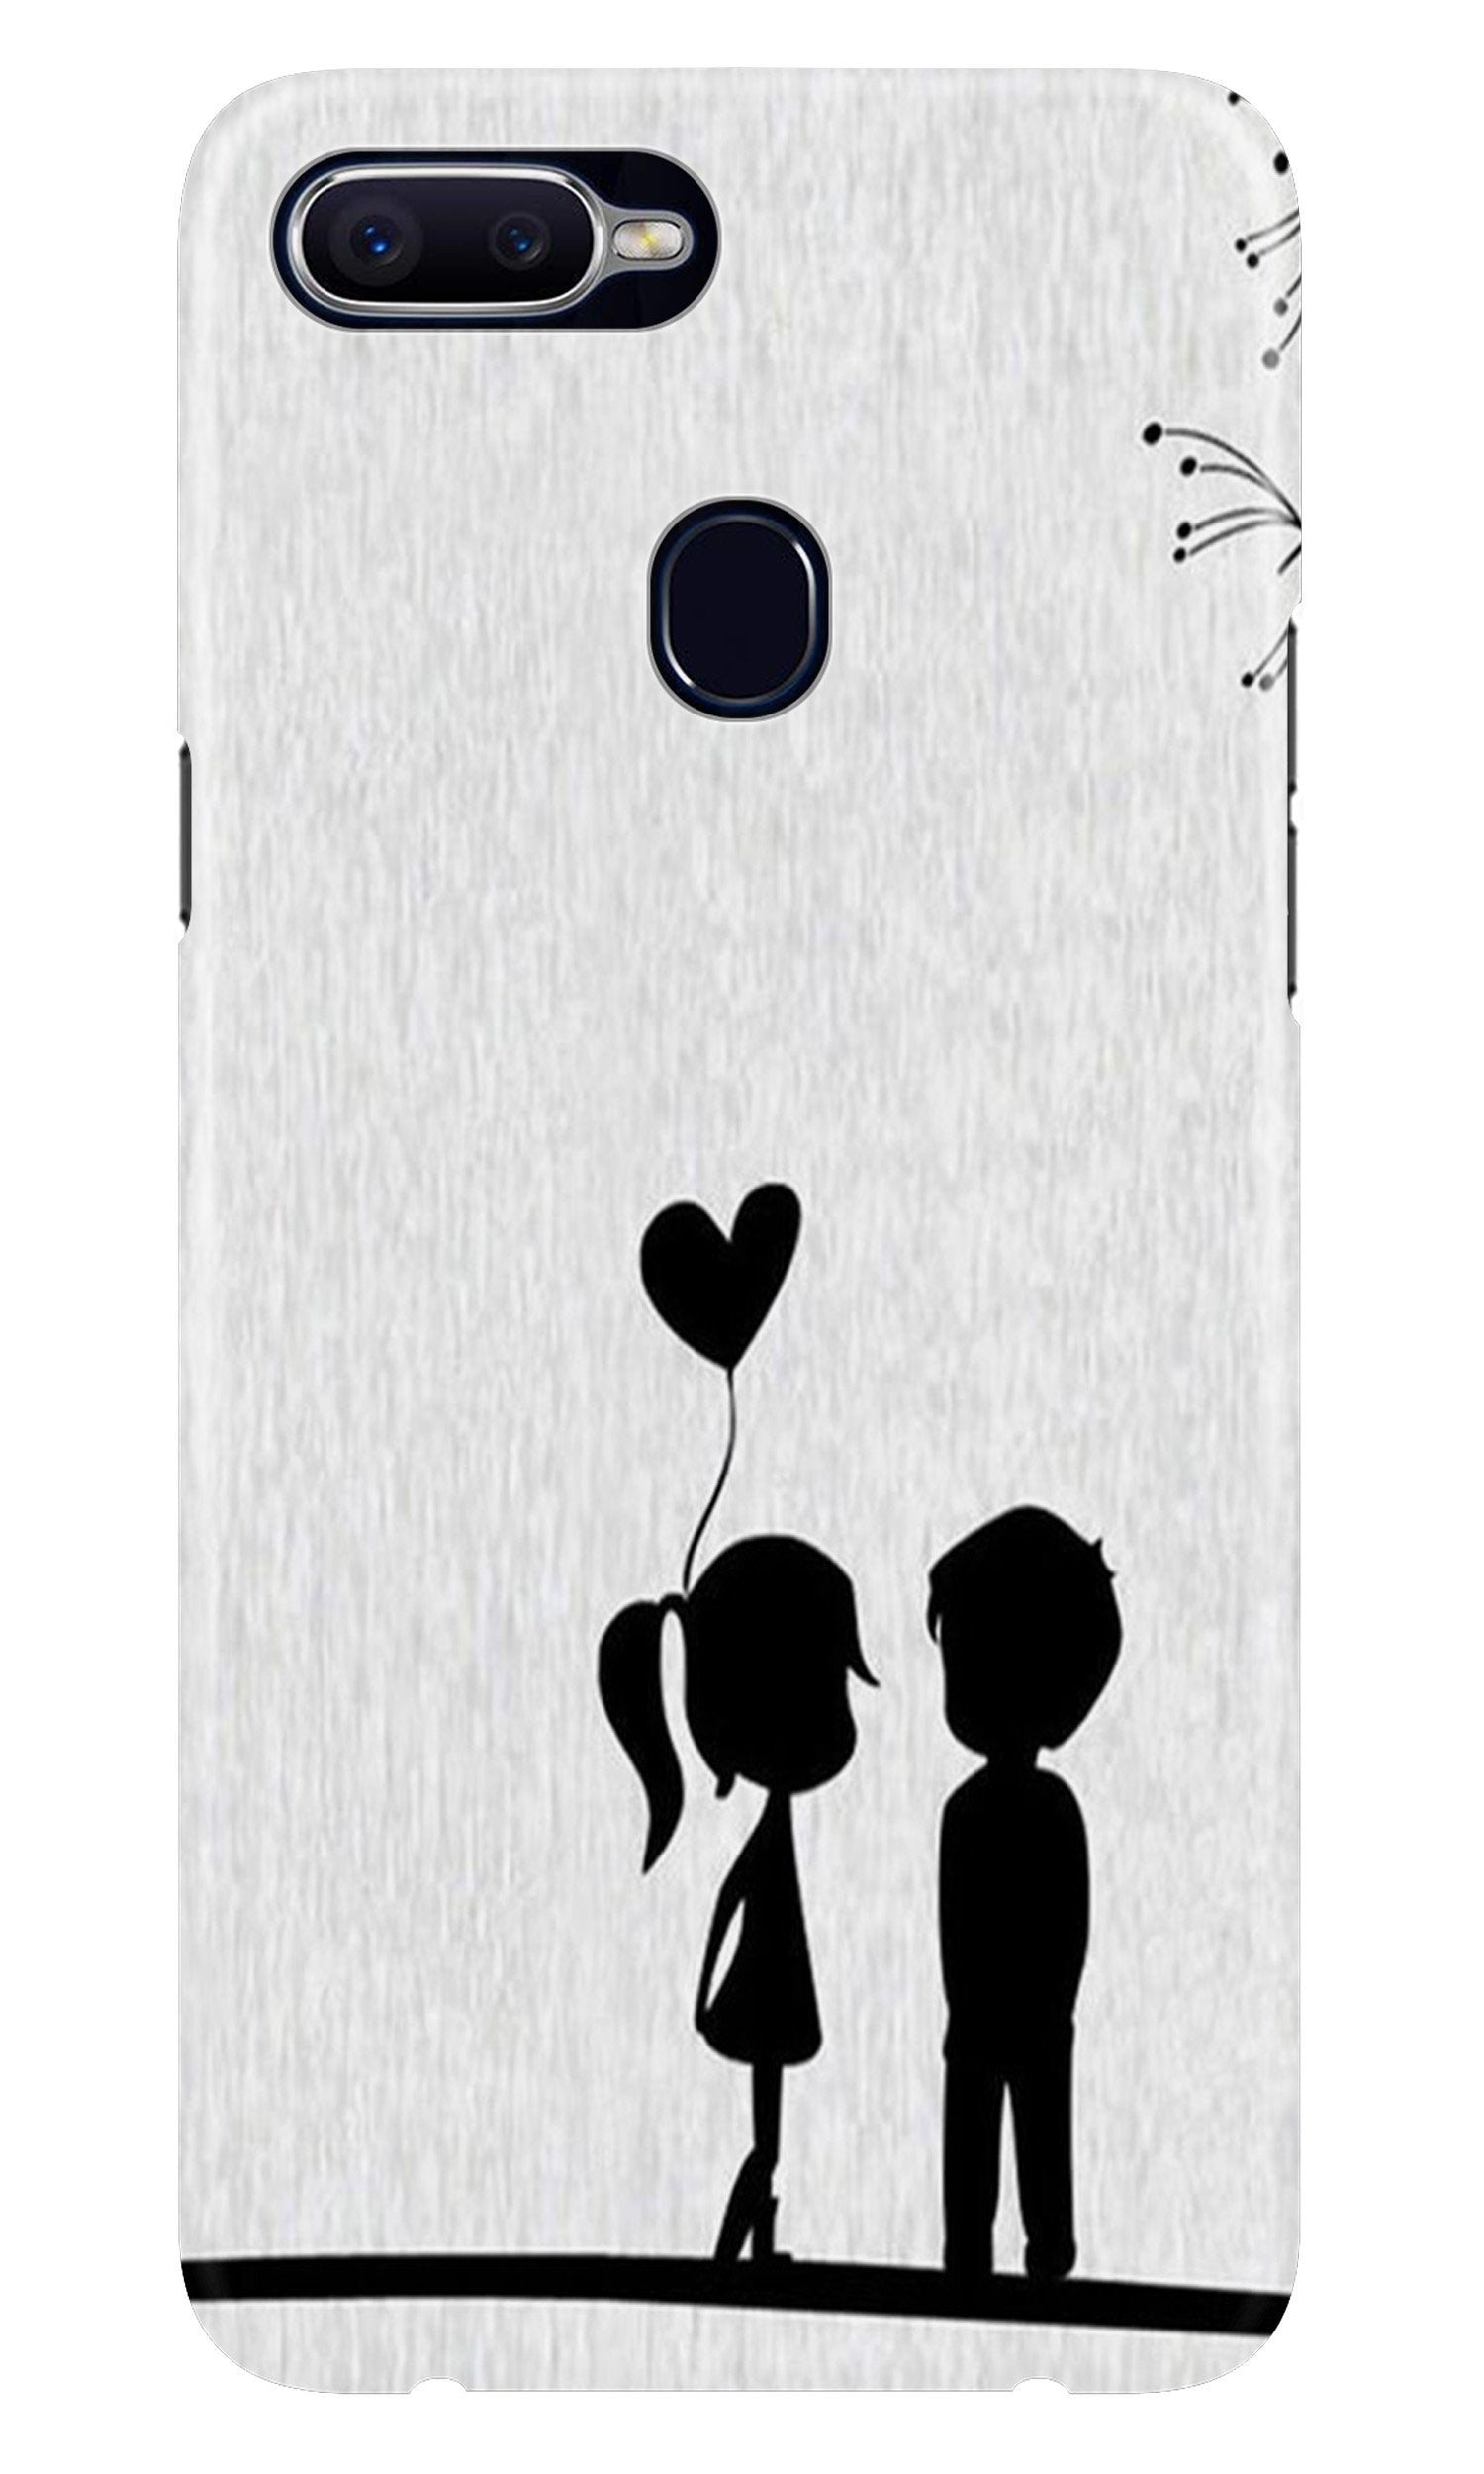 Cute Kid Couple Case for Realme 2 Pro (Design No. 283)